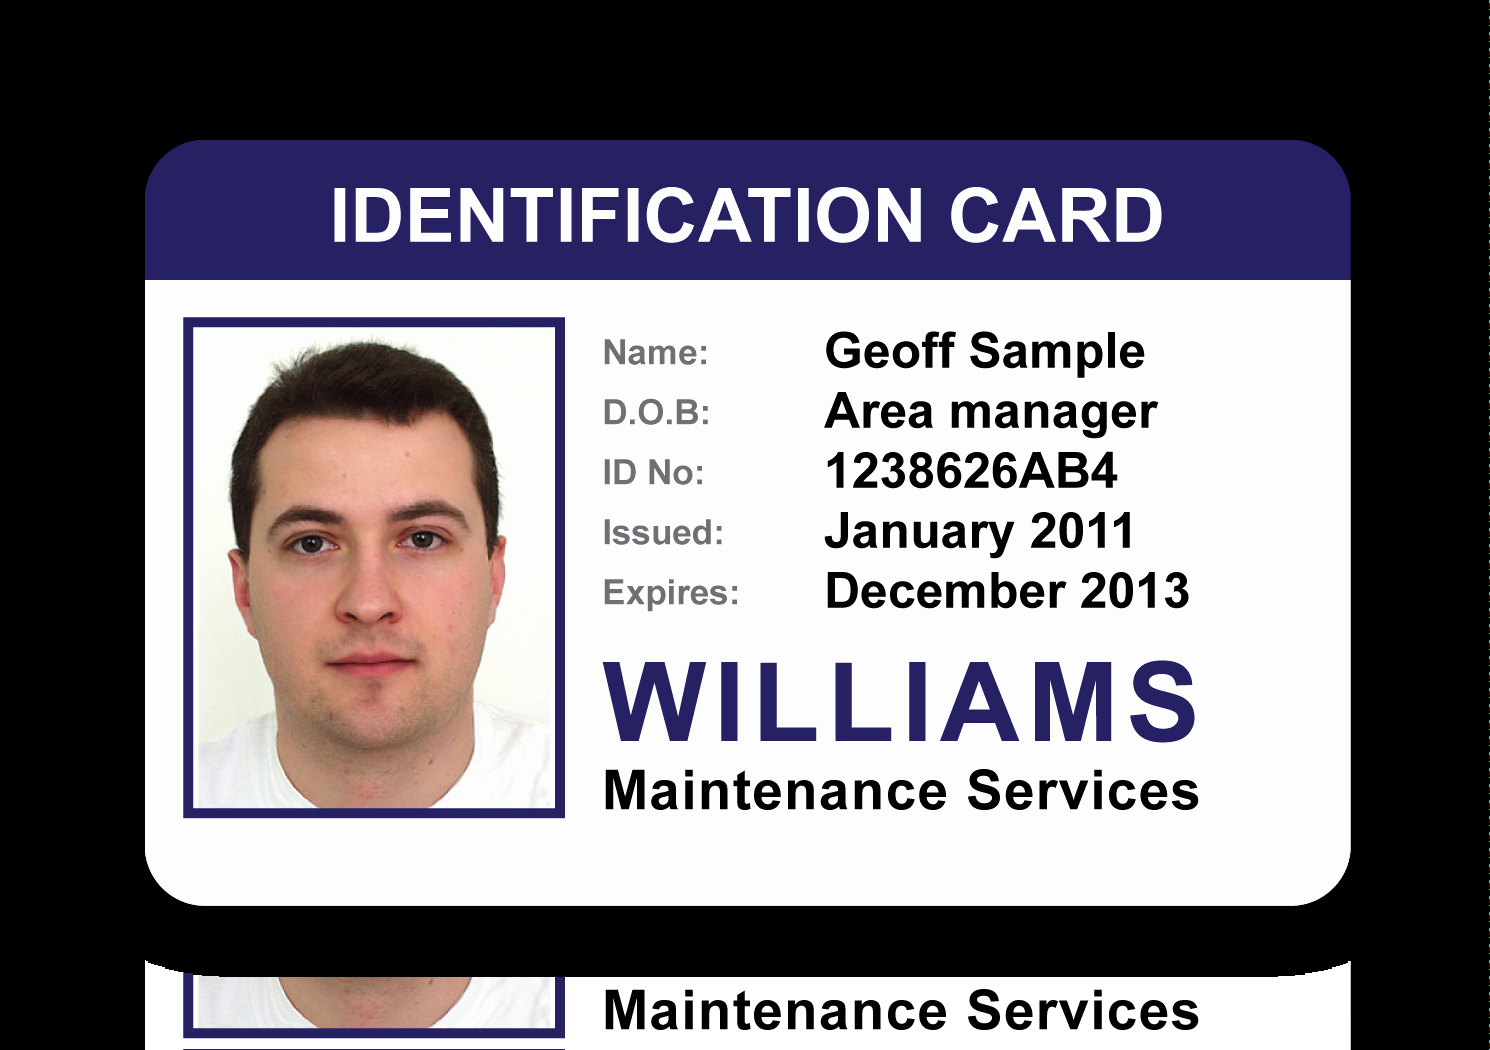 Id Card Gallery An Image to View Larger Size – Go